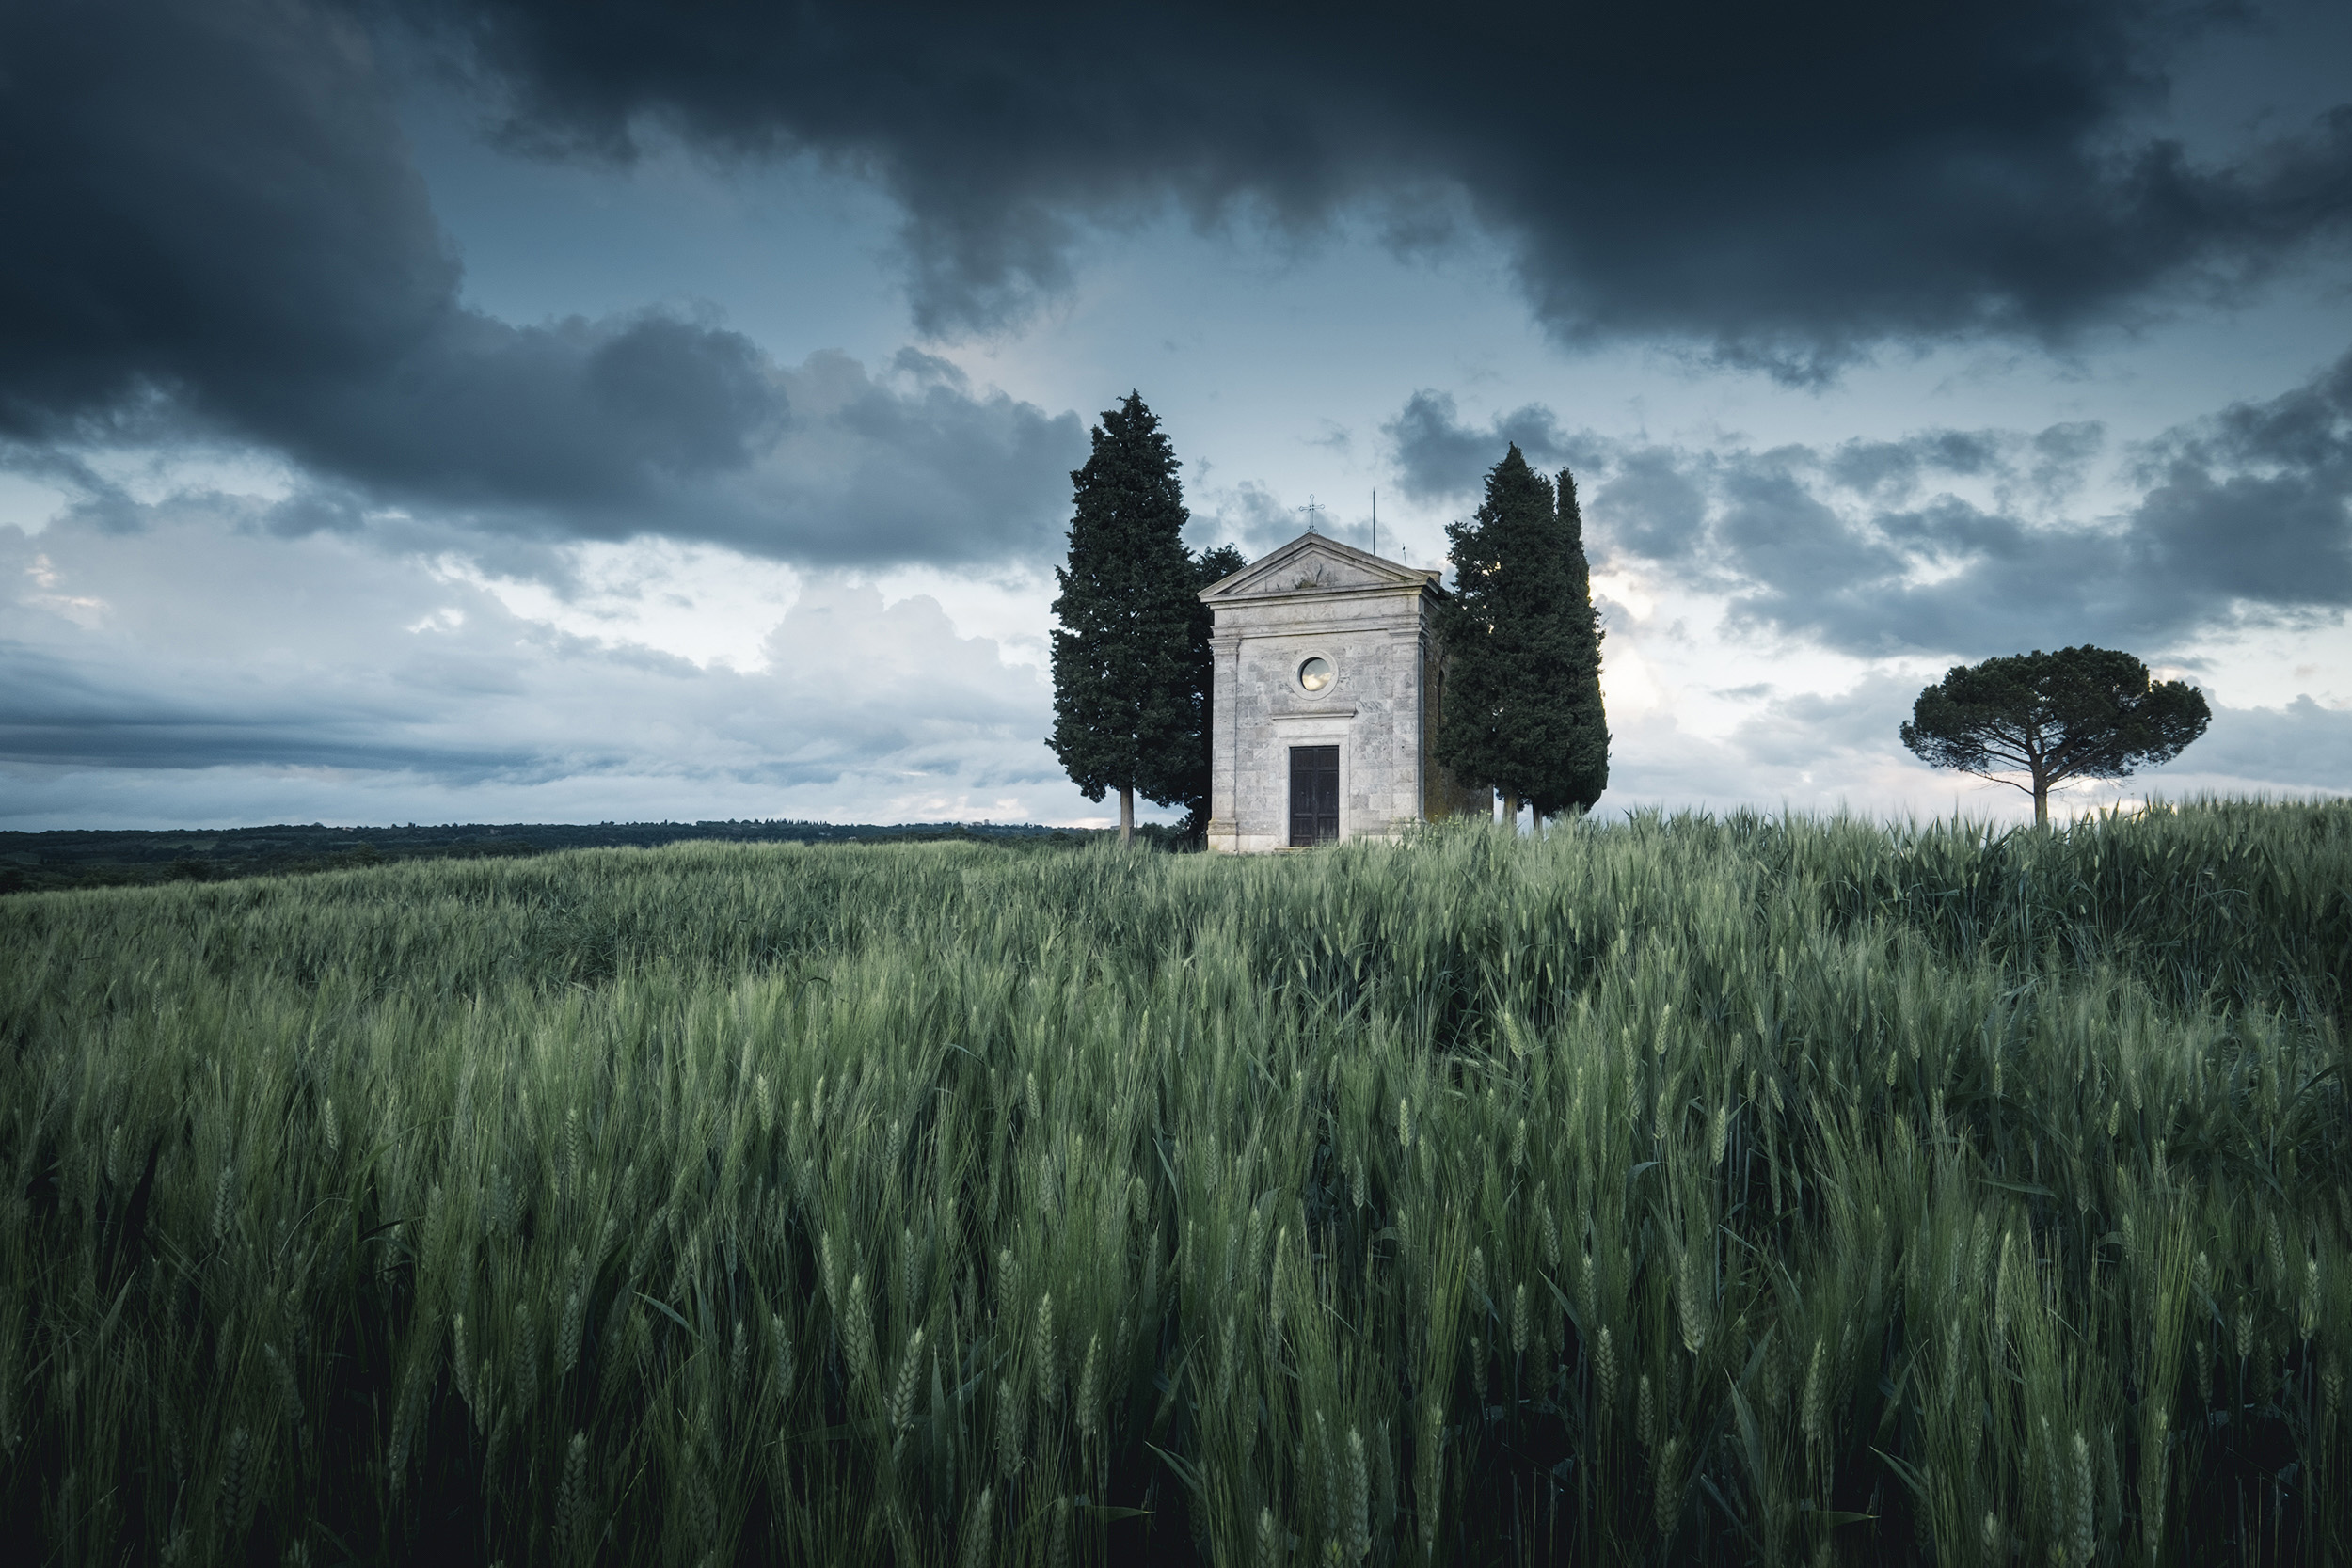 Cappella   The iconic Cappella della Madonna di Vitaleta standing atop one of the Val d'Orcia's hills in the last light of day beneath a stormy sky